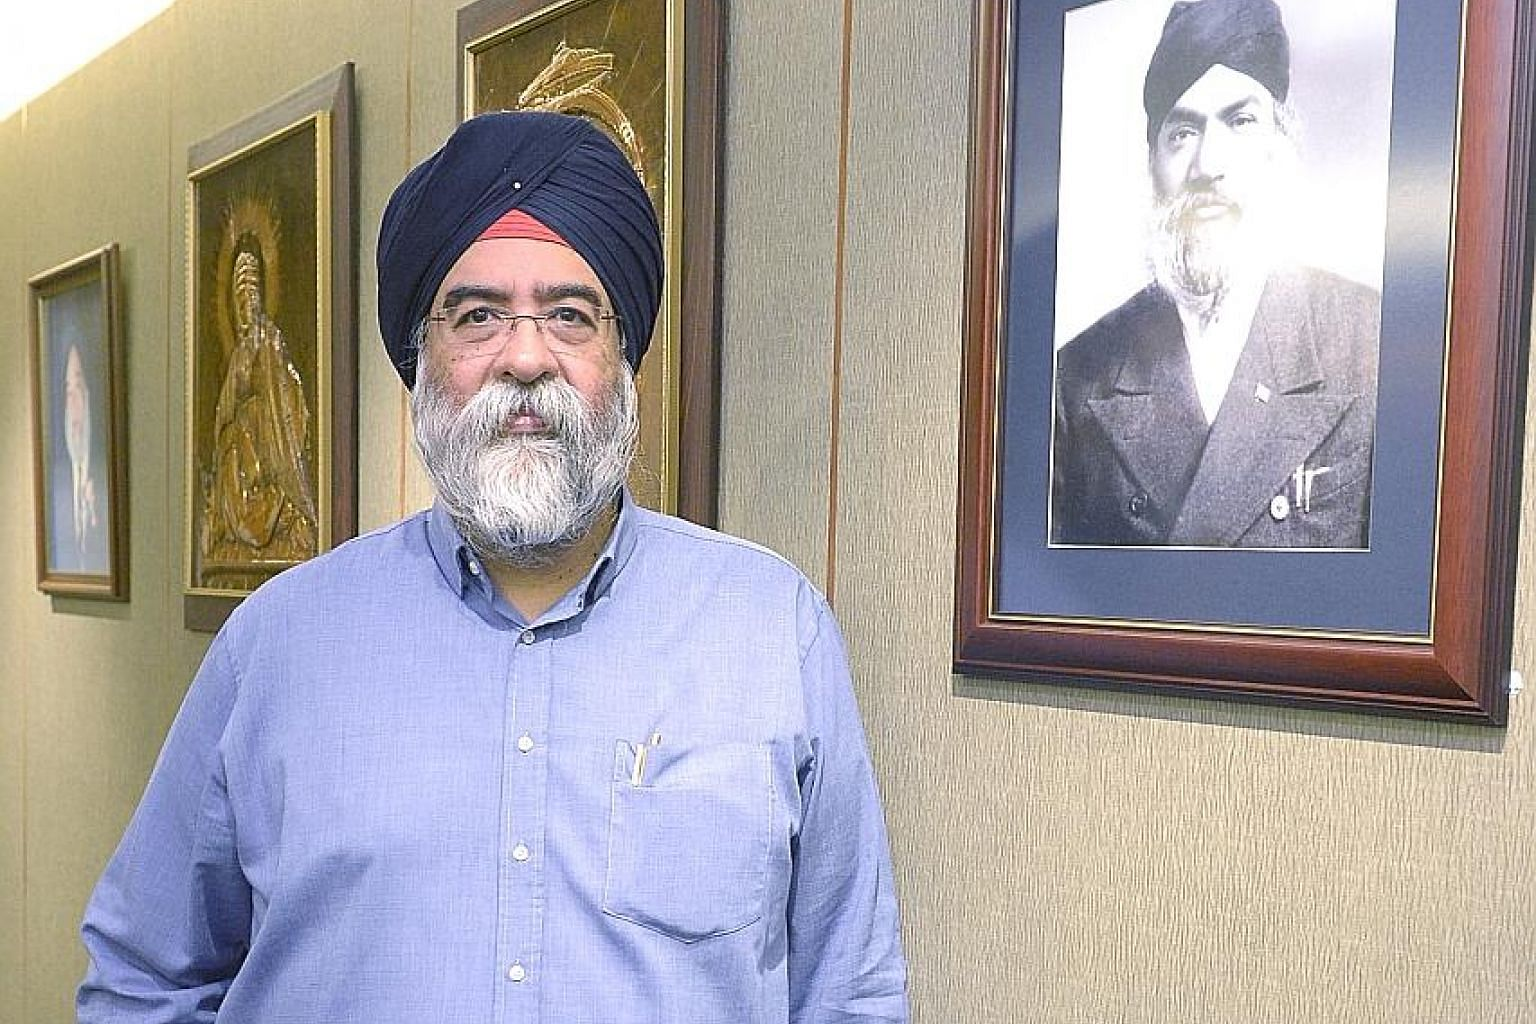 The company moved its business focus to property investments, beauty and lifestyle products, and likes the signs it is seeing, says CEO Inderbethal Singh Thakral.